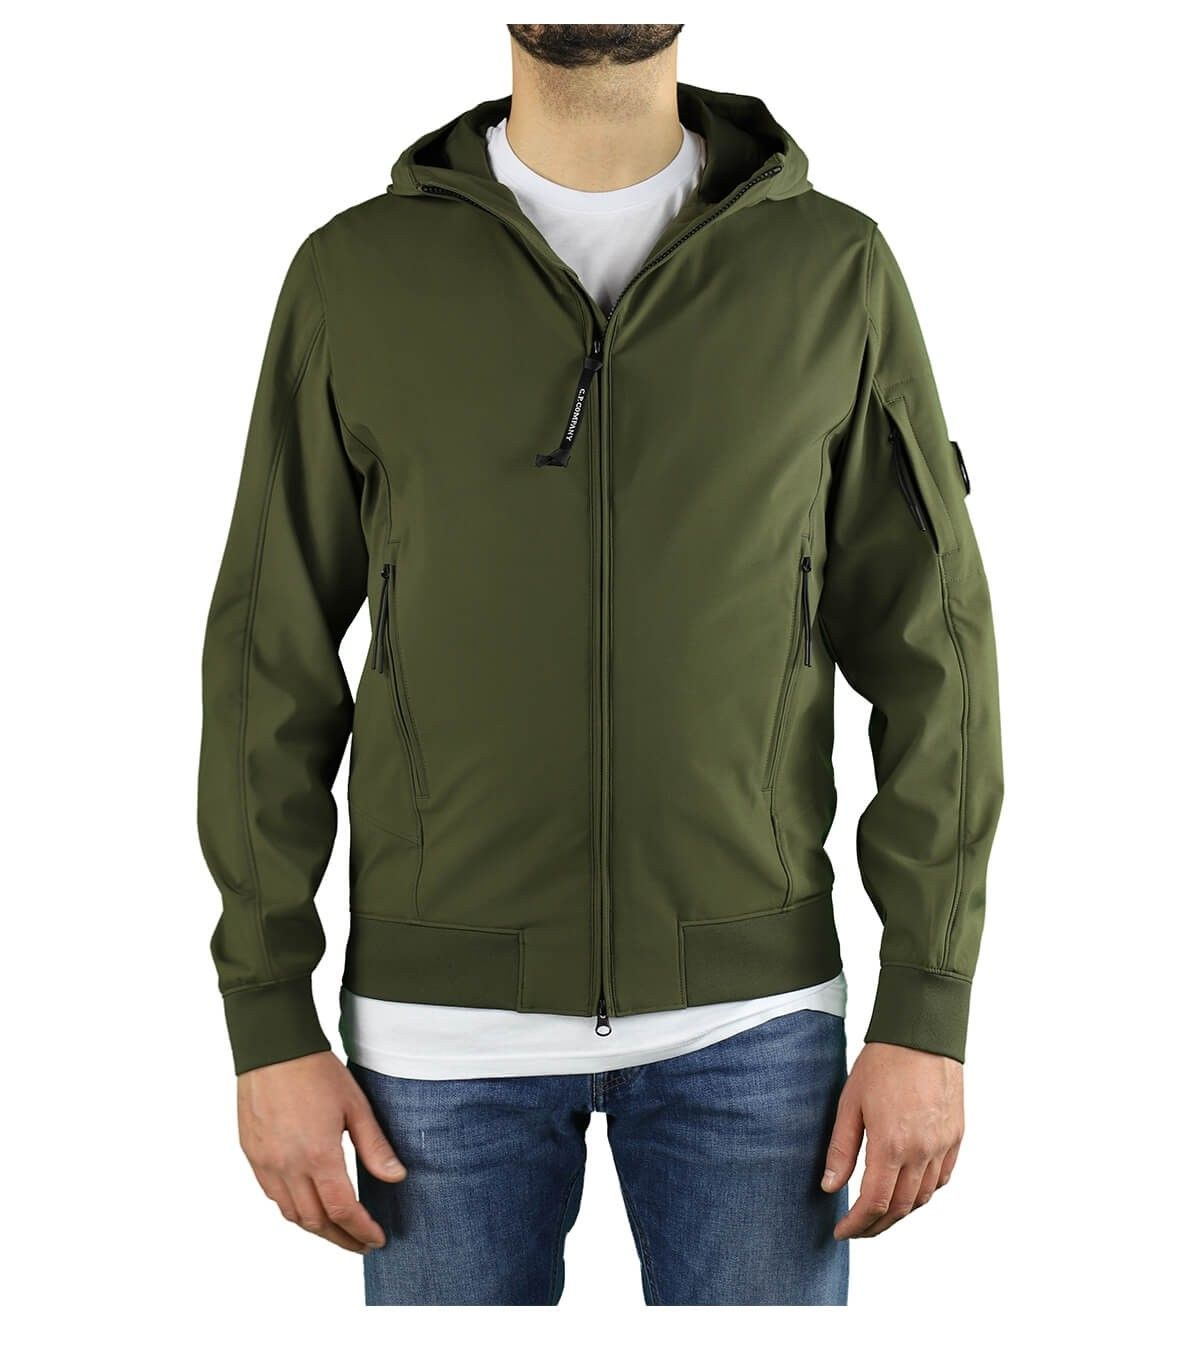 C.p. Company CP COMPANY MEN'S GREEN POLYAMIDE OUTERWEAR JACKET